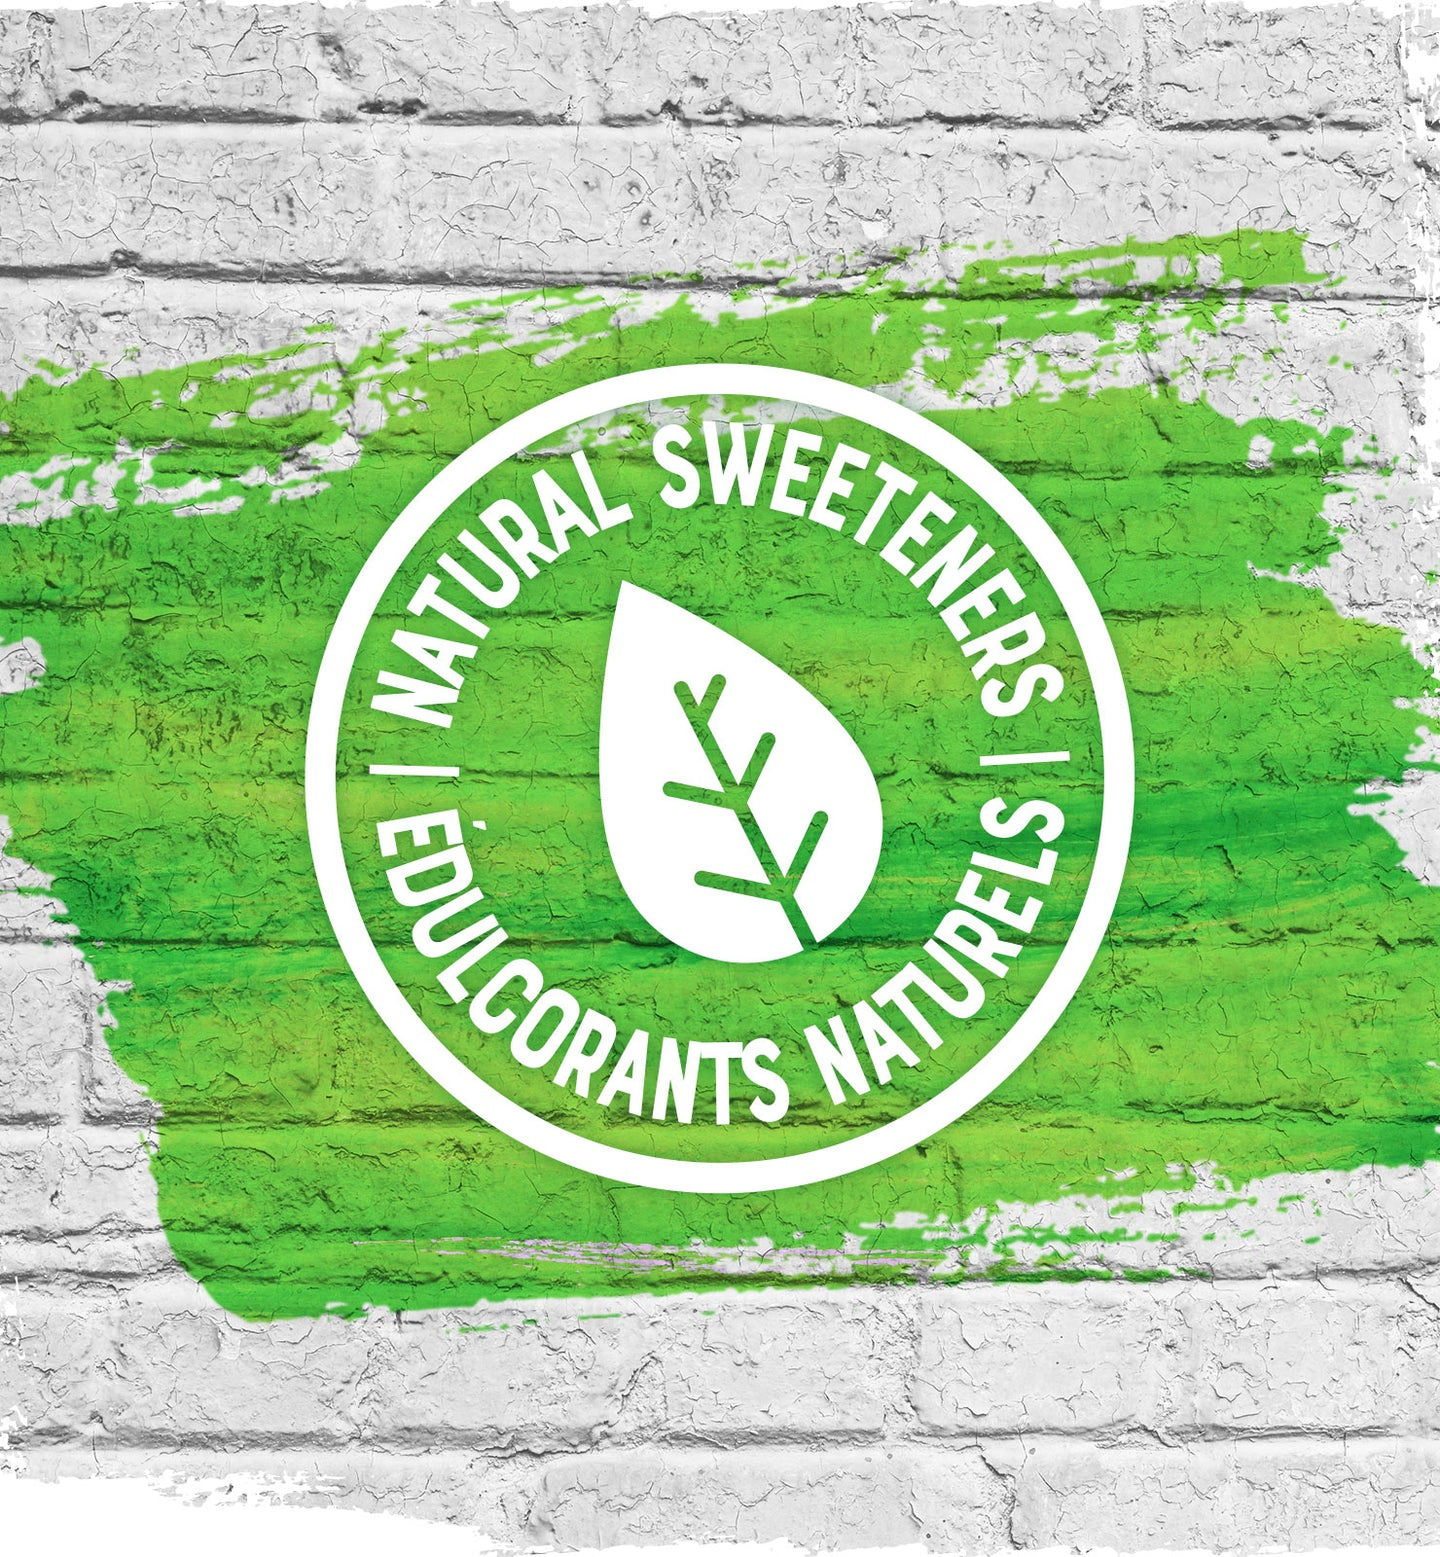 Natural sweeteners logo